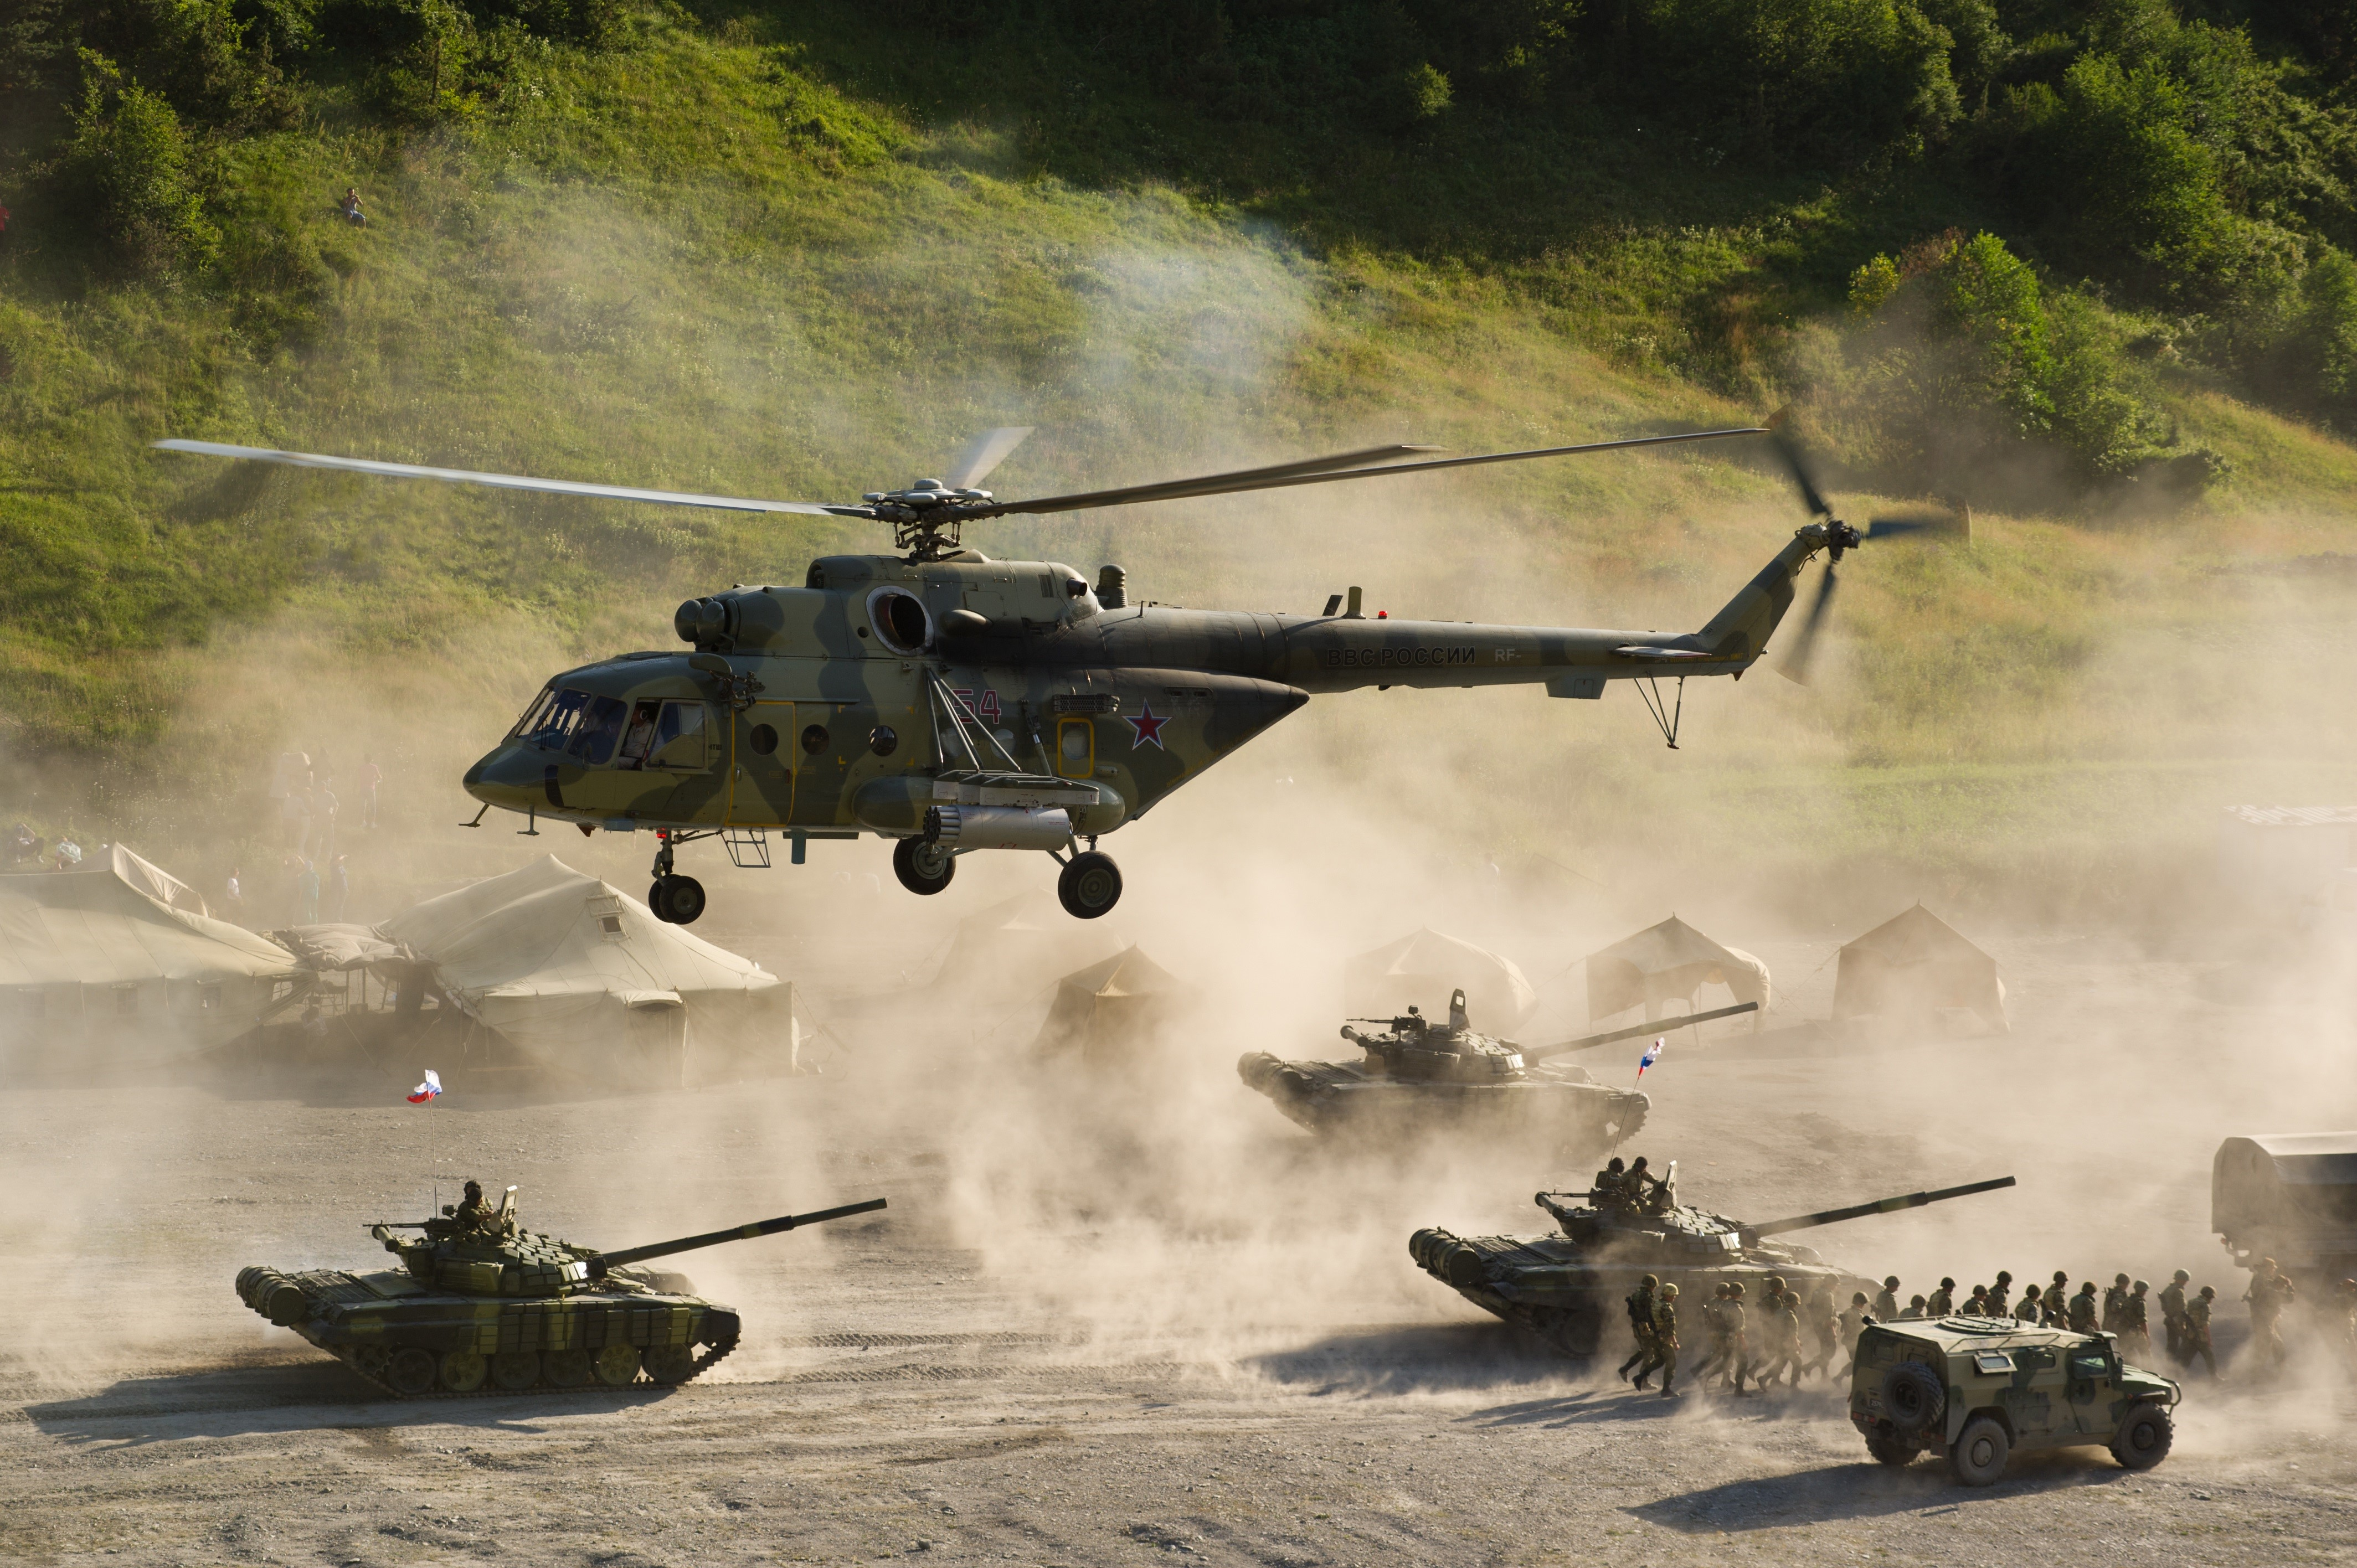 US Army Tank and Helicopter HD Photo HD Famous Wallpapers 4256x2832